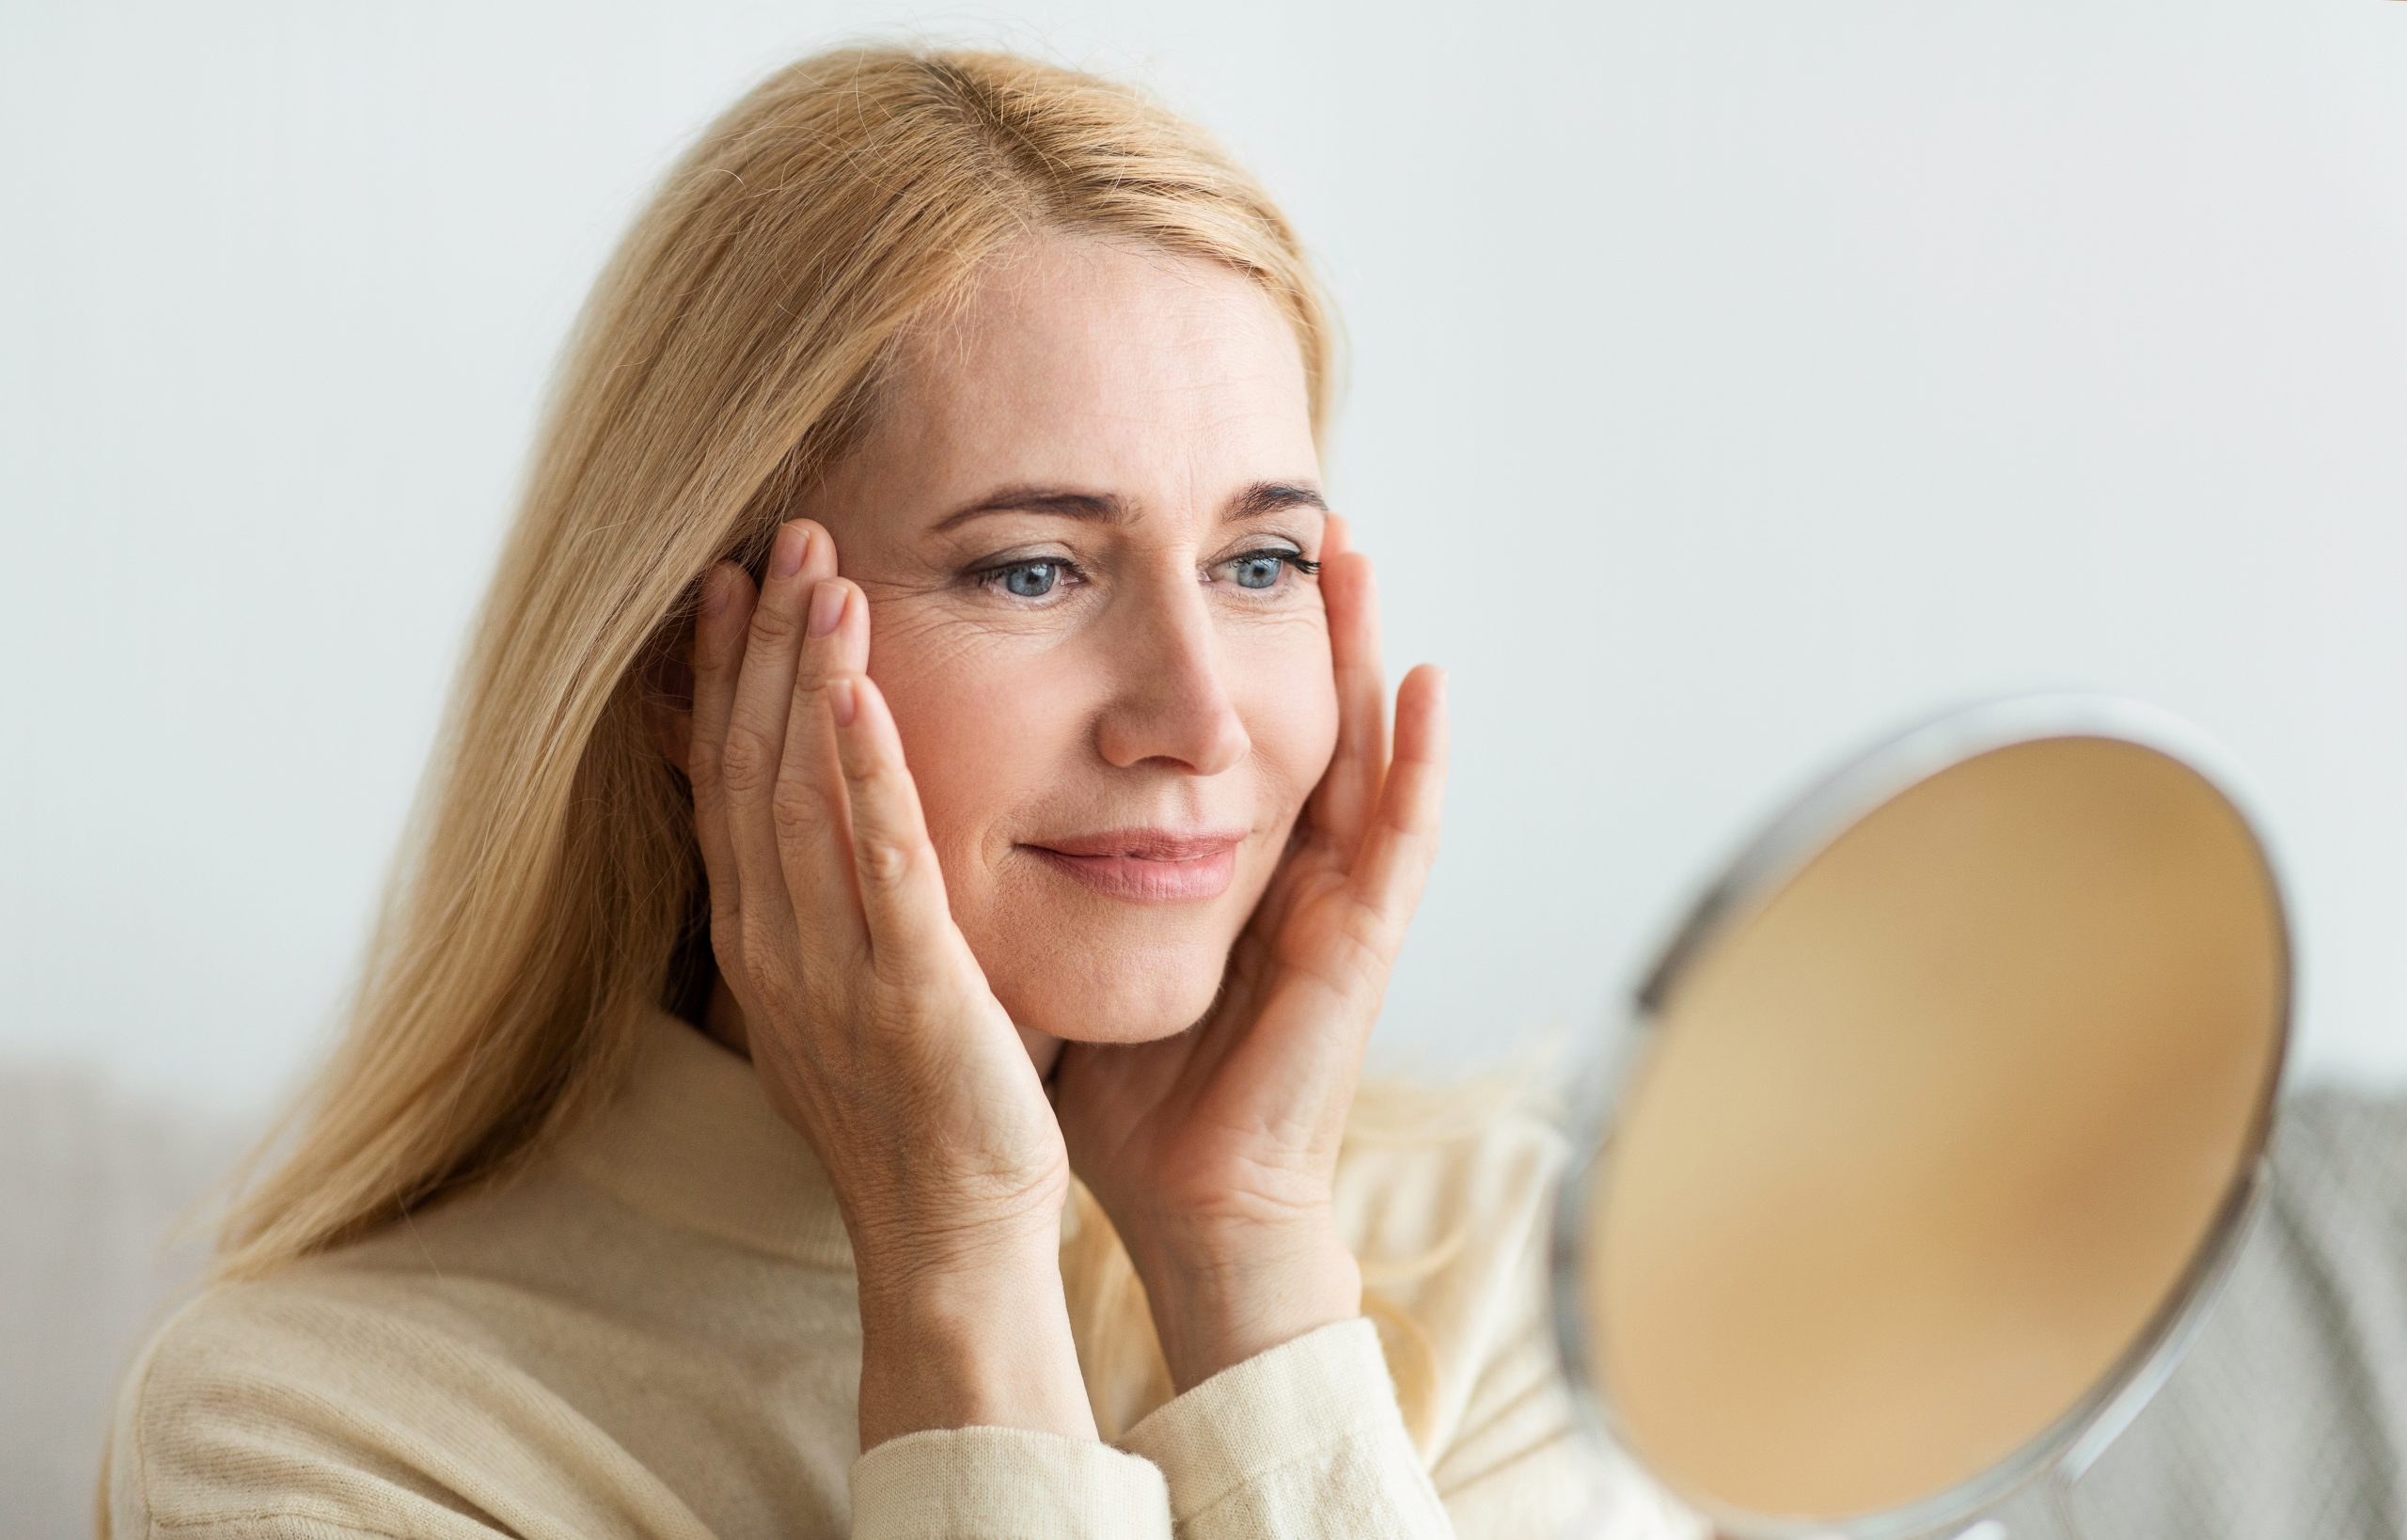 Get the most out of microdermabrasion with our top 5 aftercare tips